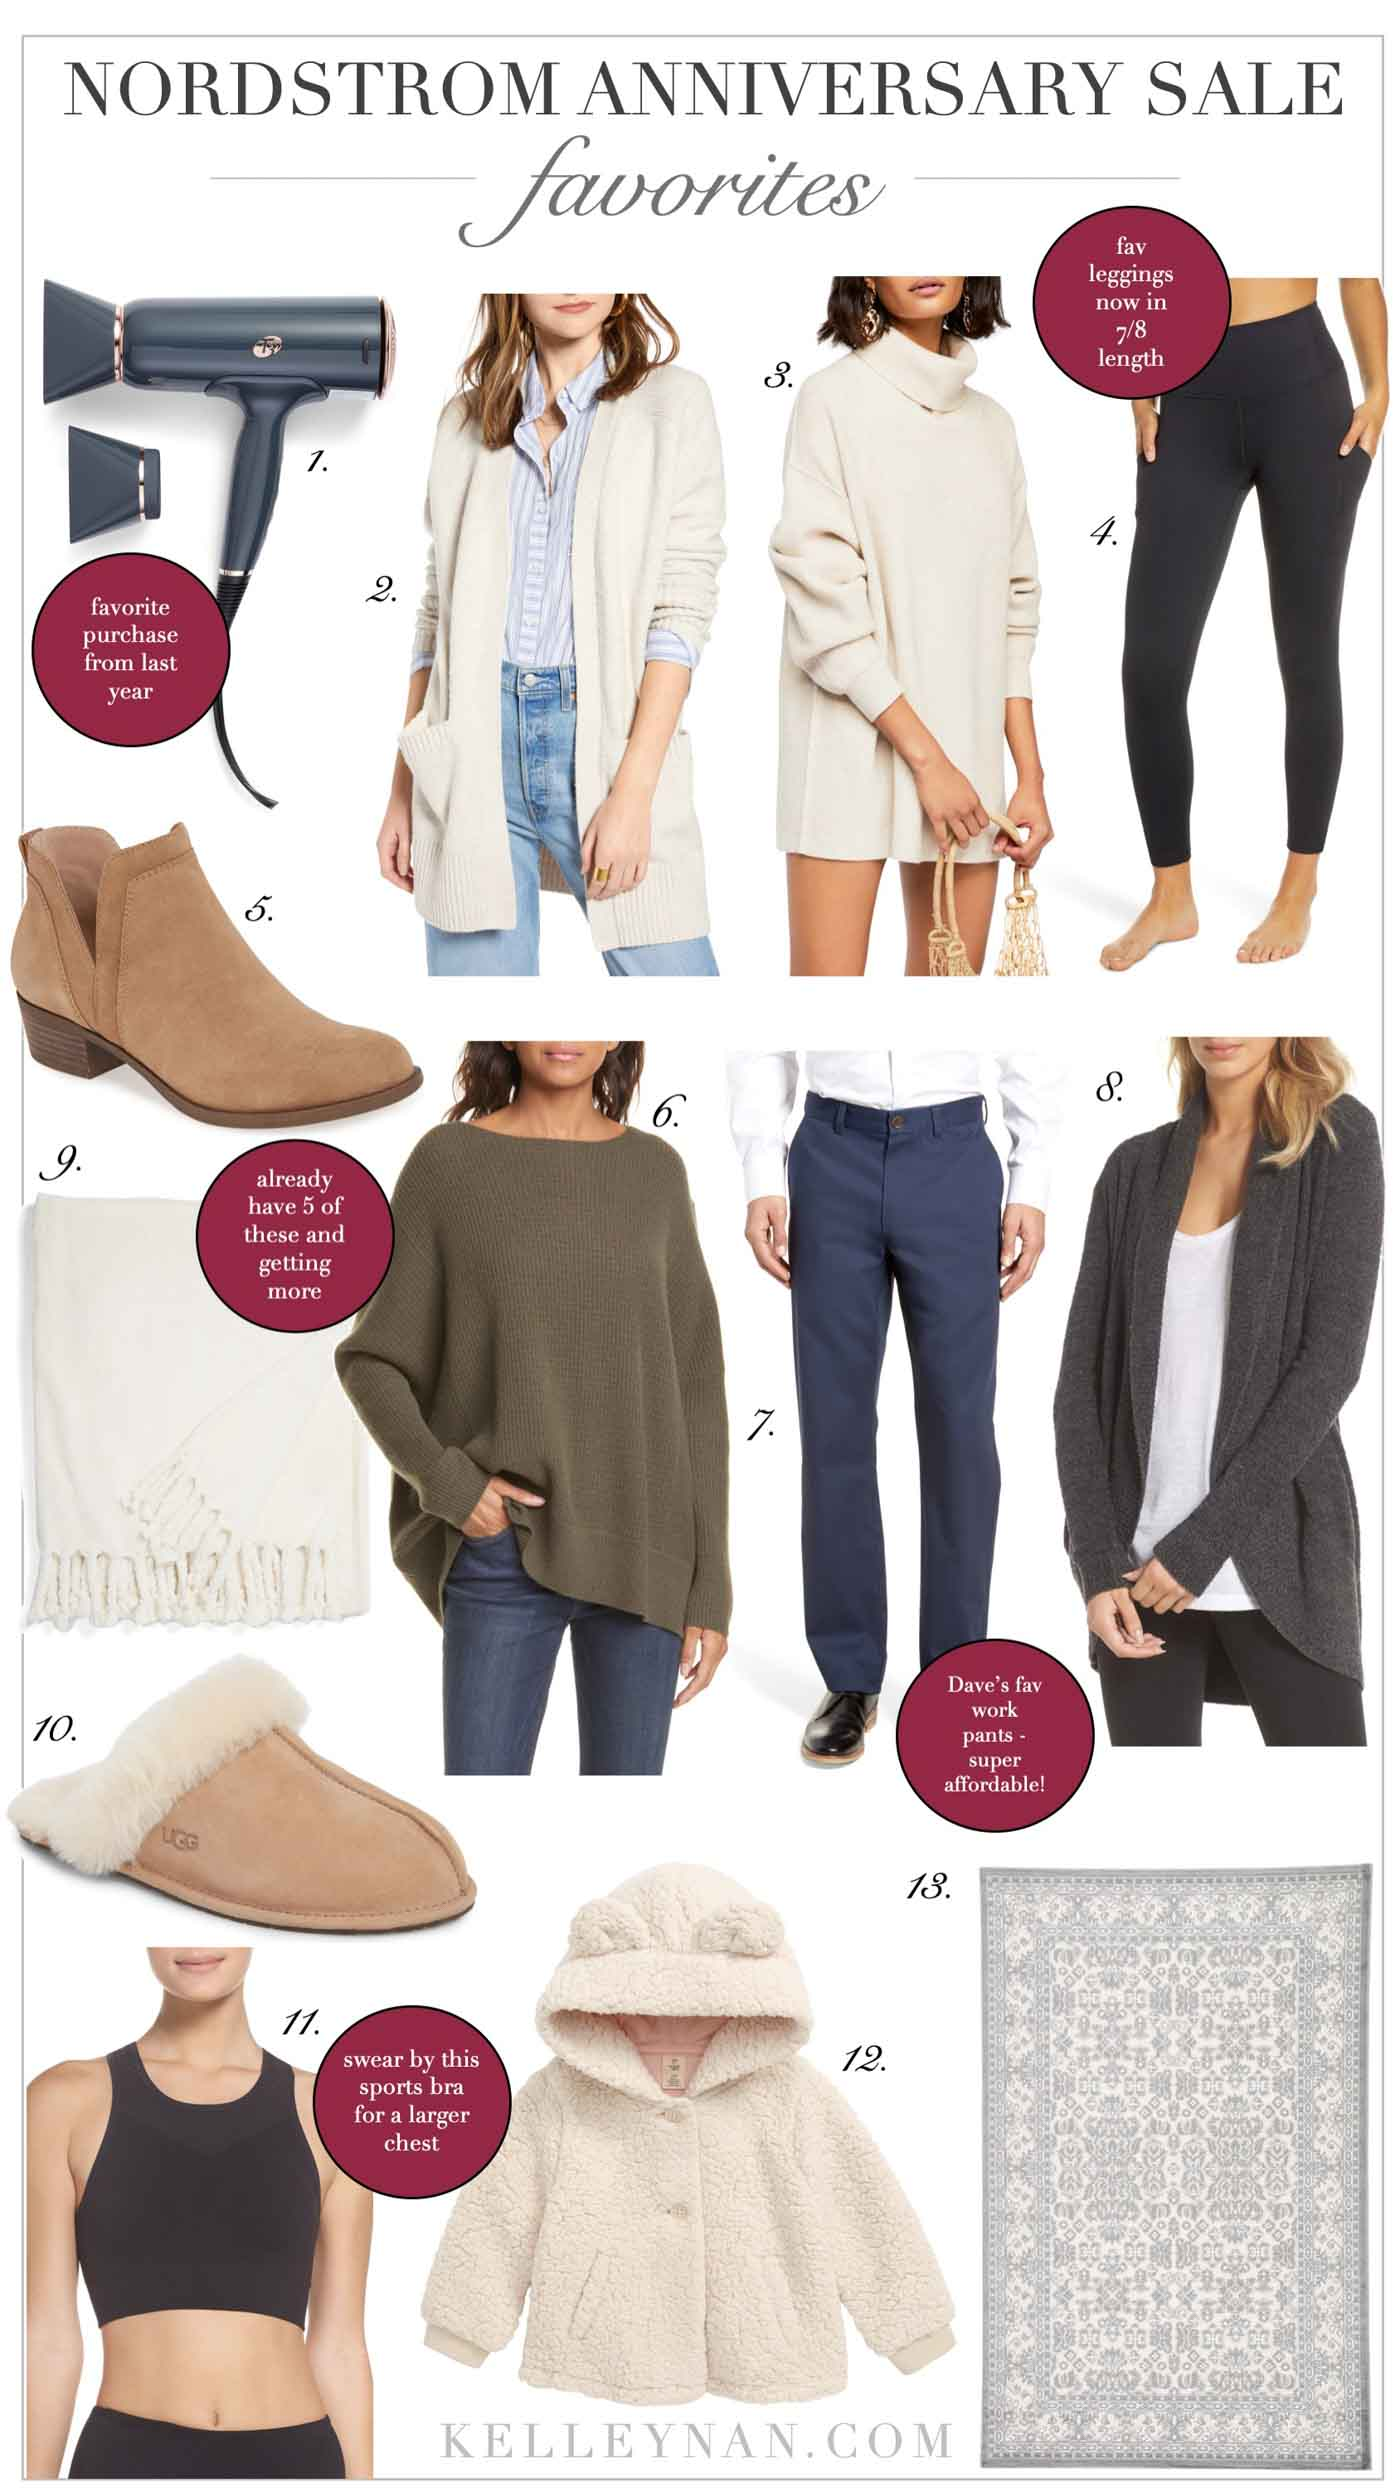 Nordstrom Sale- Best of Home, Fashion, Kids and Mens